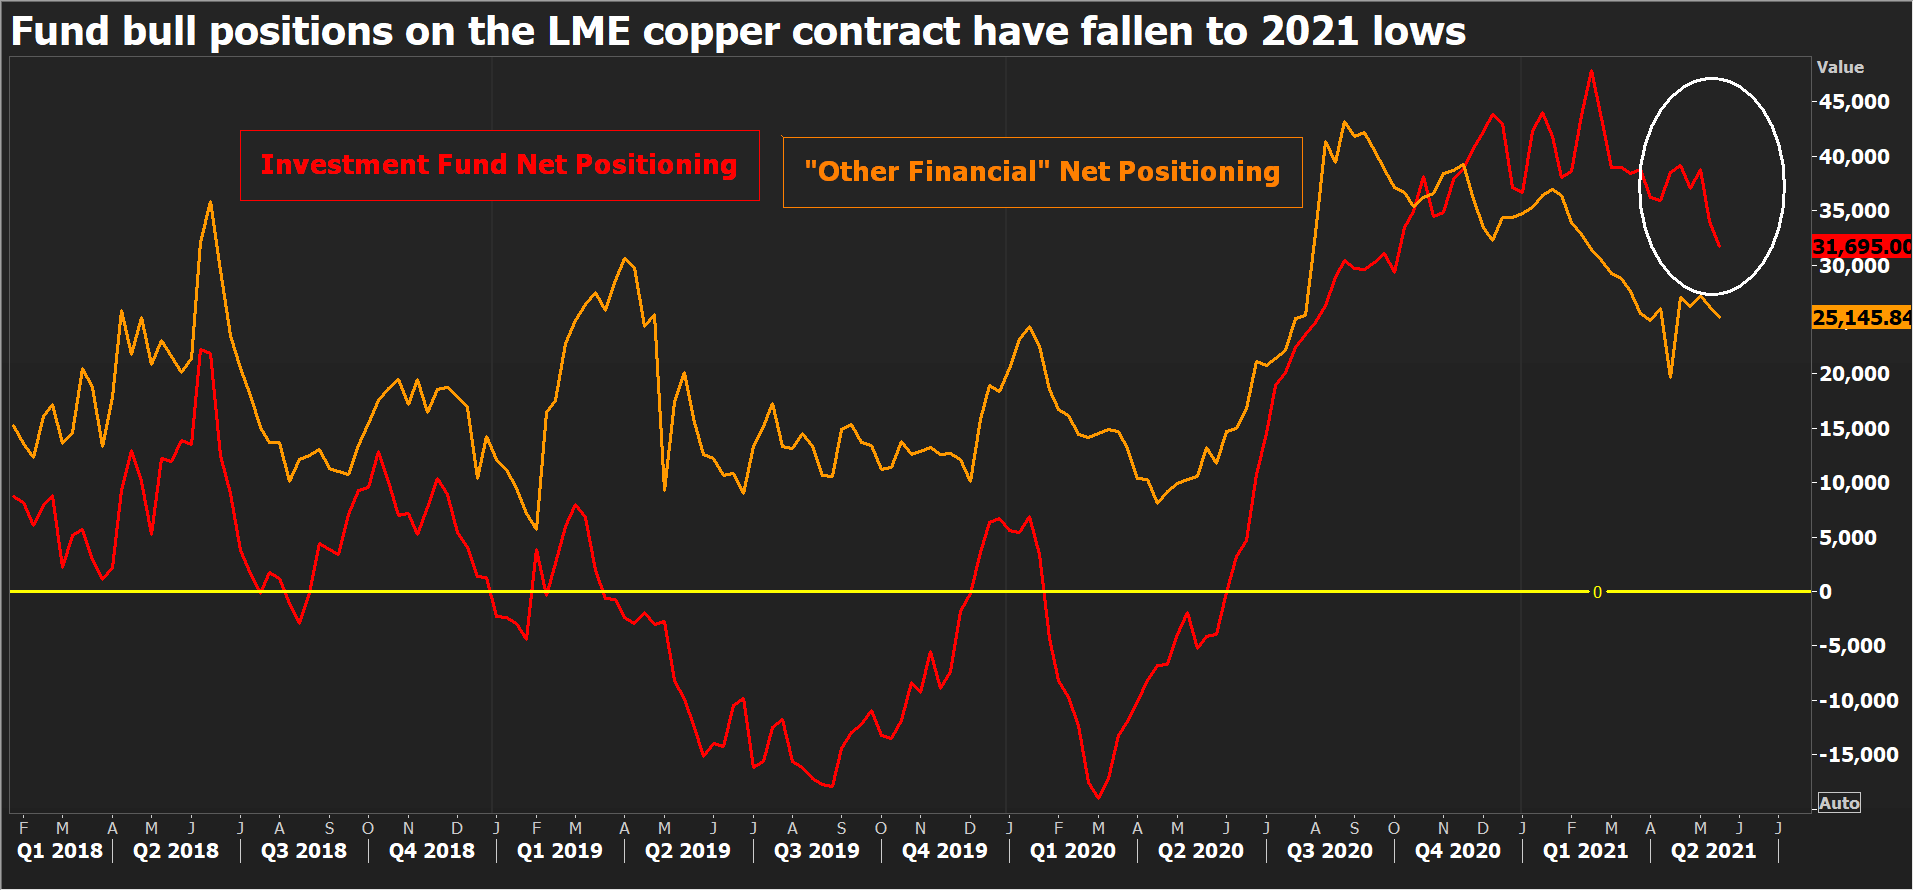 Fund positioning on LME copper.